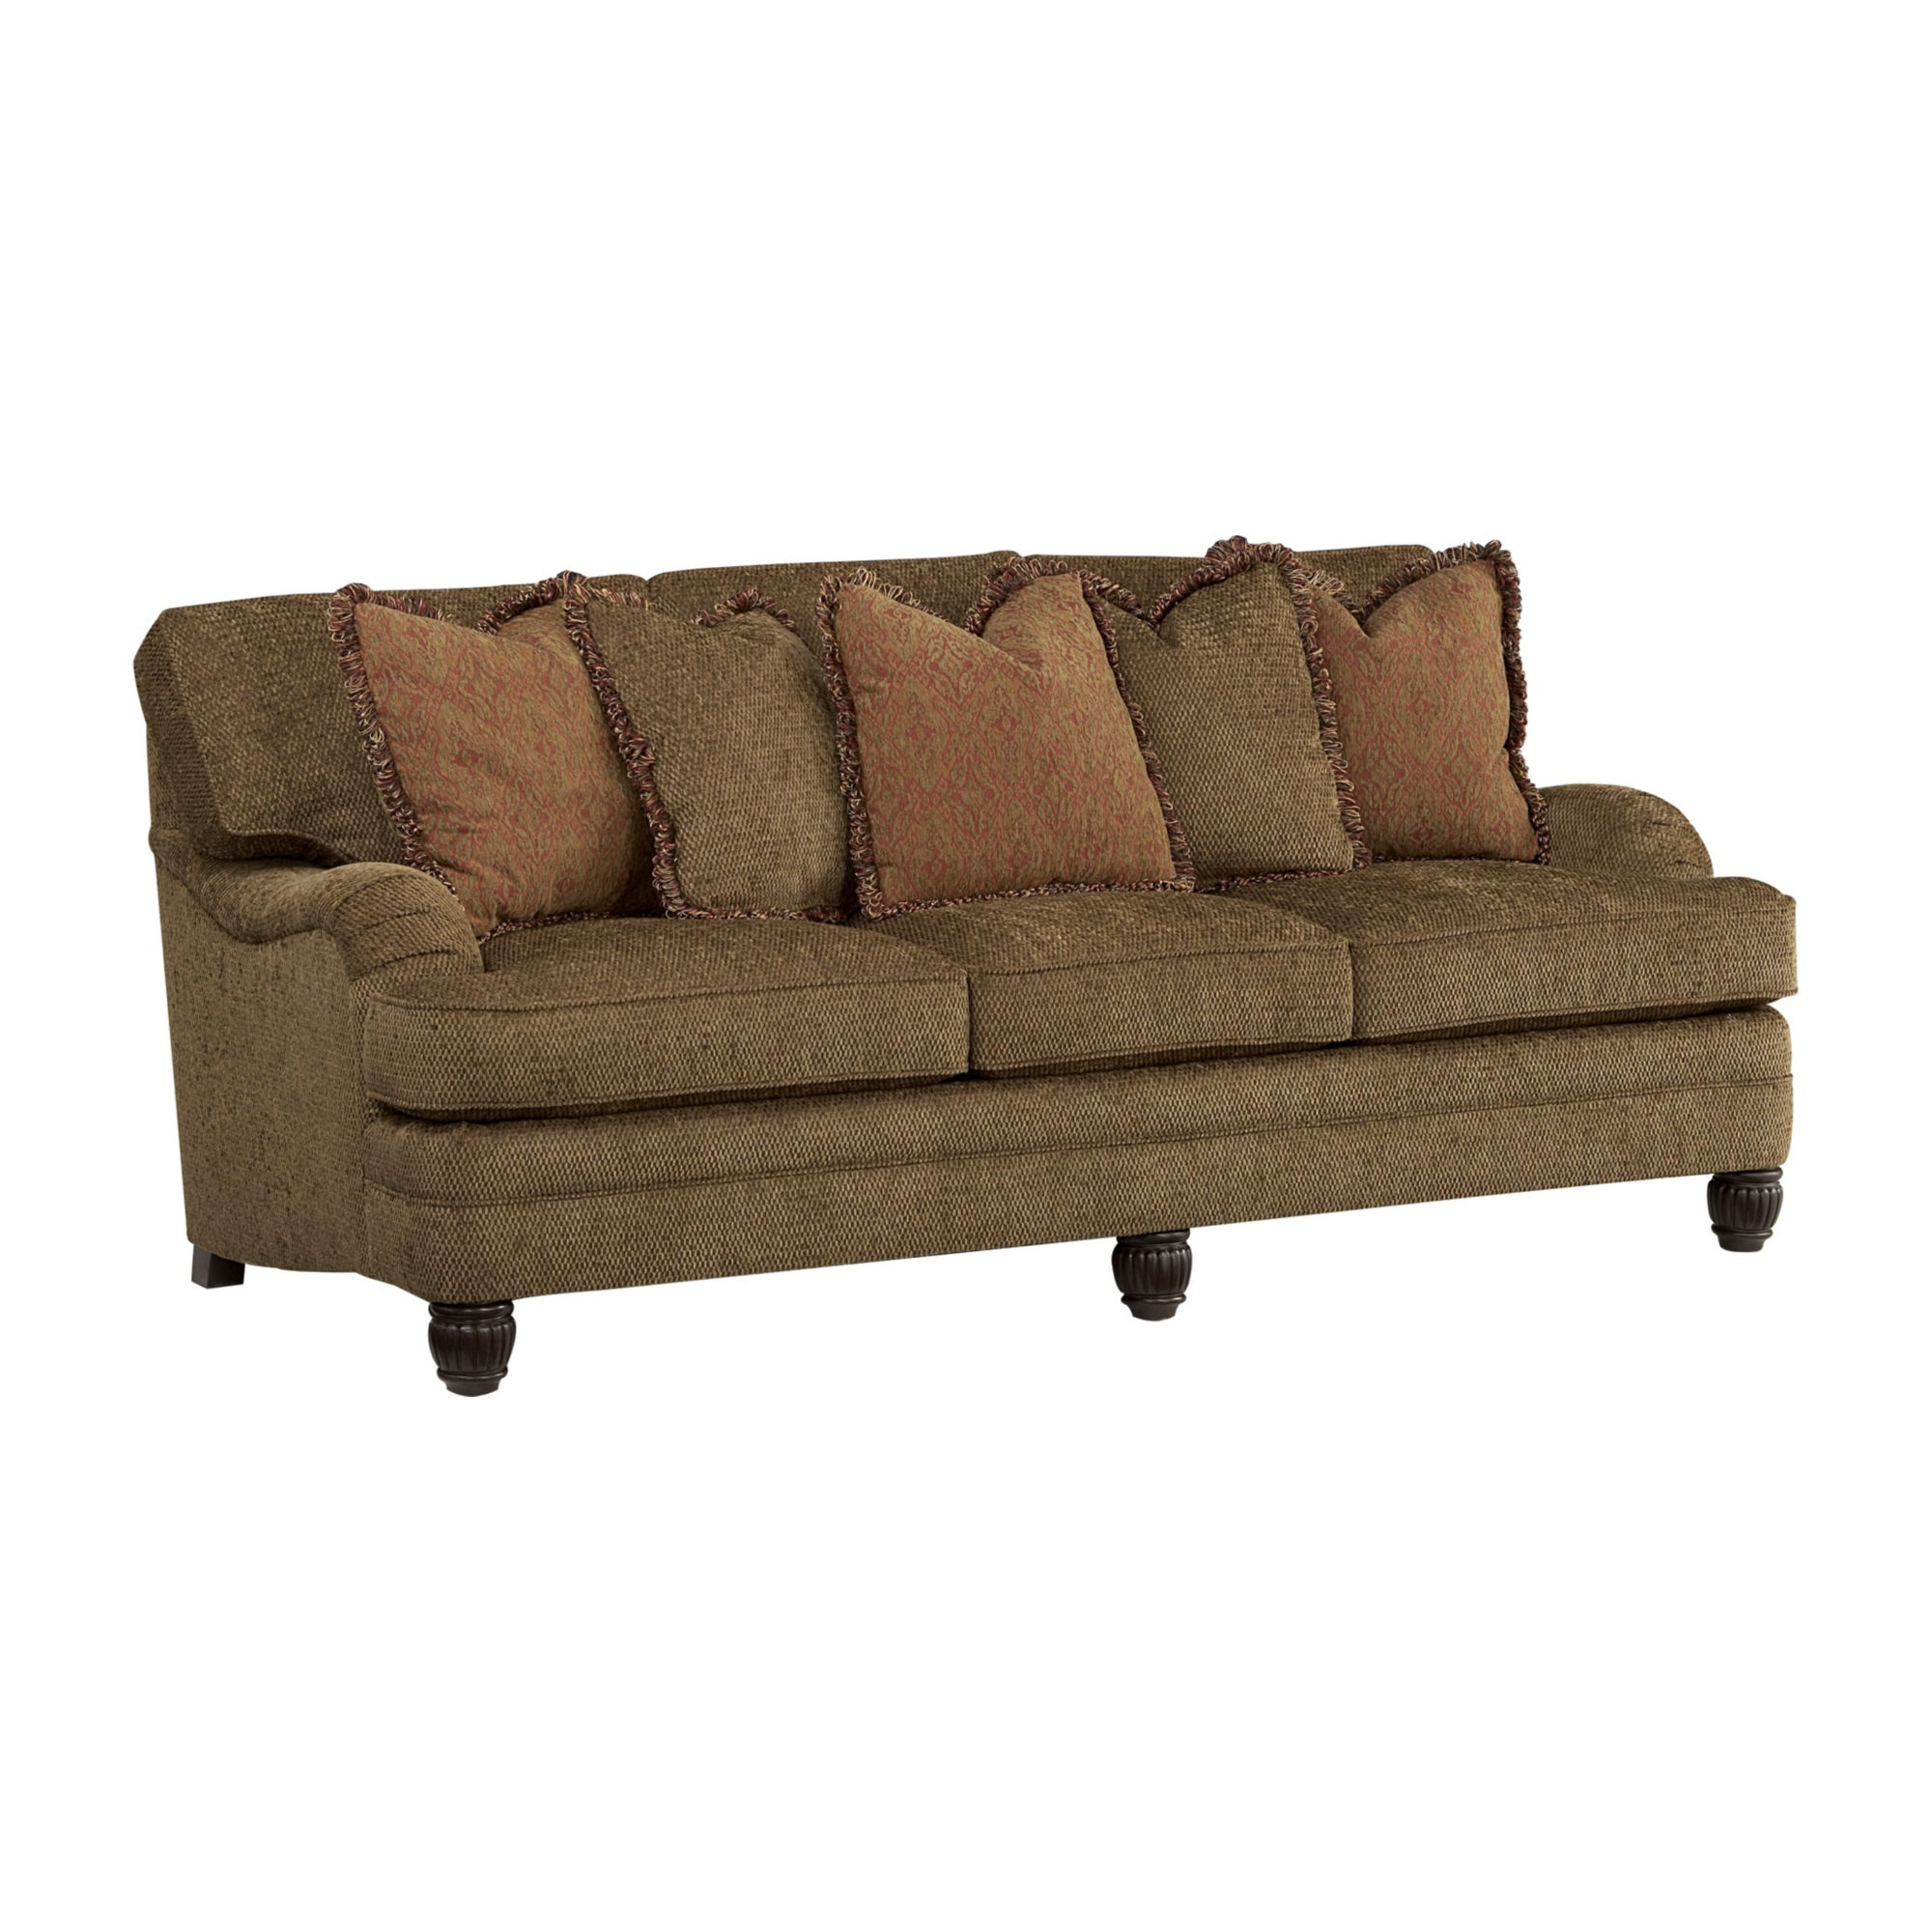 Havertys living room furniture for Havertys furniture